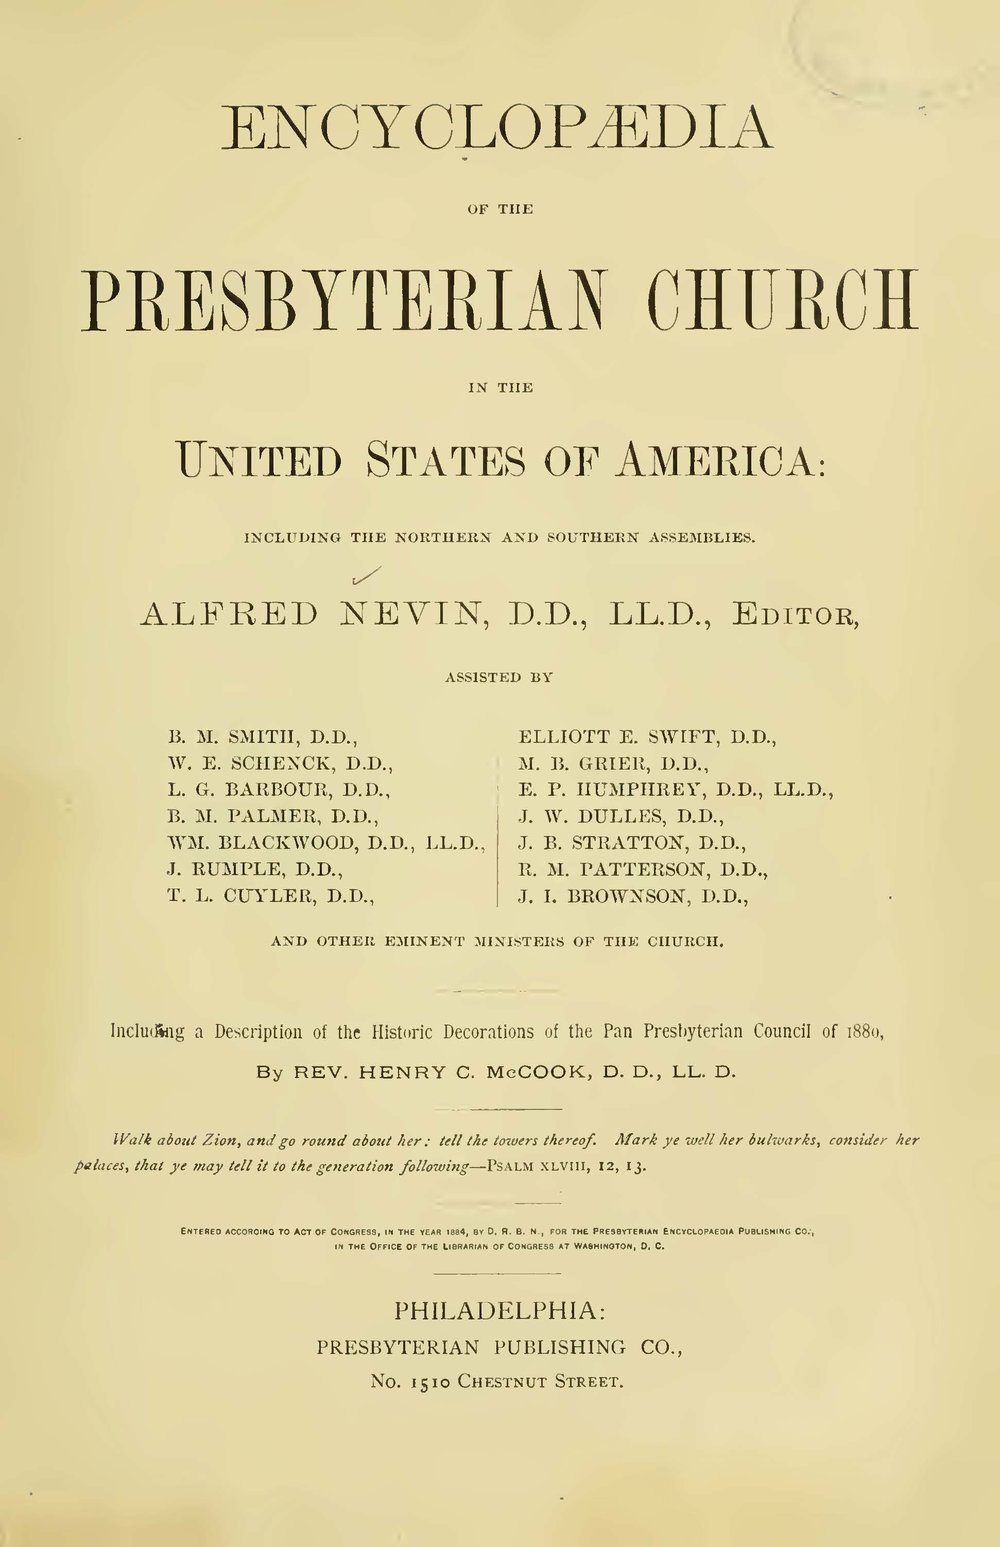 Nevin, Alfred, Encyclopedia of the Presbyterian Church Title Page.jpg